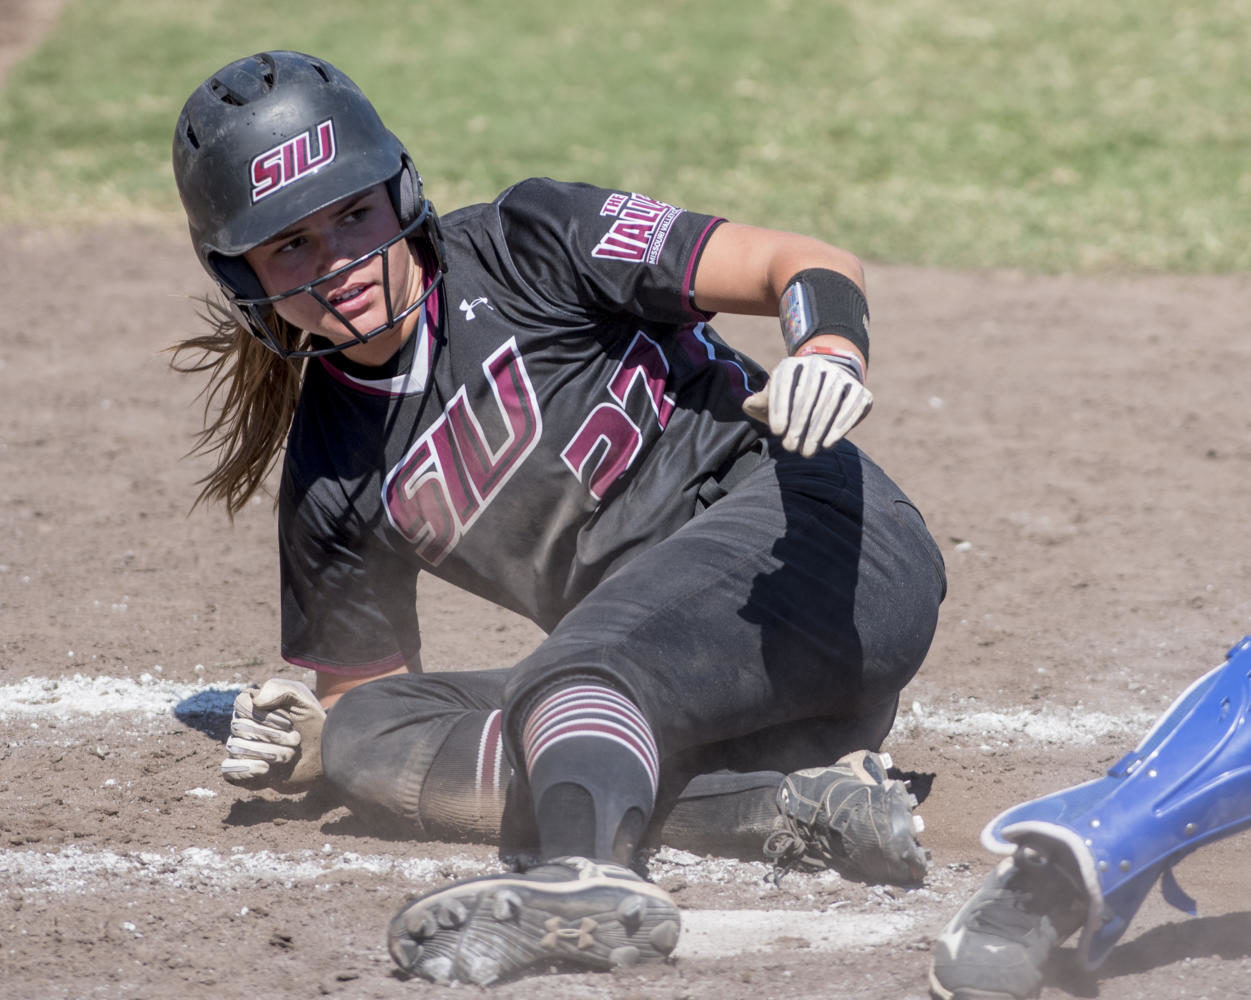 Sophomore infield Maddy Vermejan slides into home plate Sunday, Sept. 10, 2017, during the Salukis' second game of the season against John A. Logan Vols at Brechtelsbauer Field. (Dylan Nelson | @DylanNelson99)